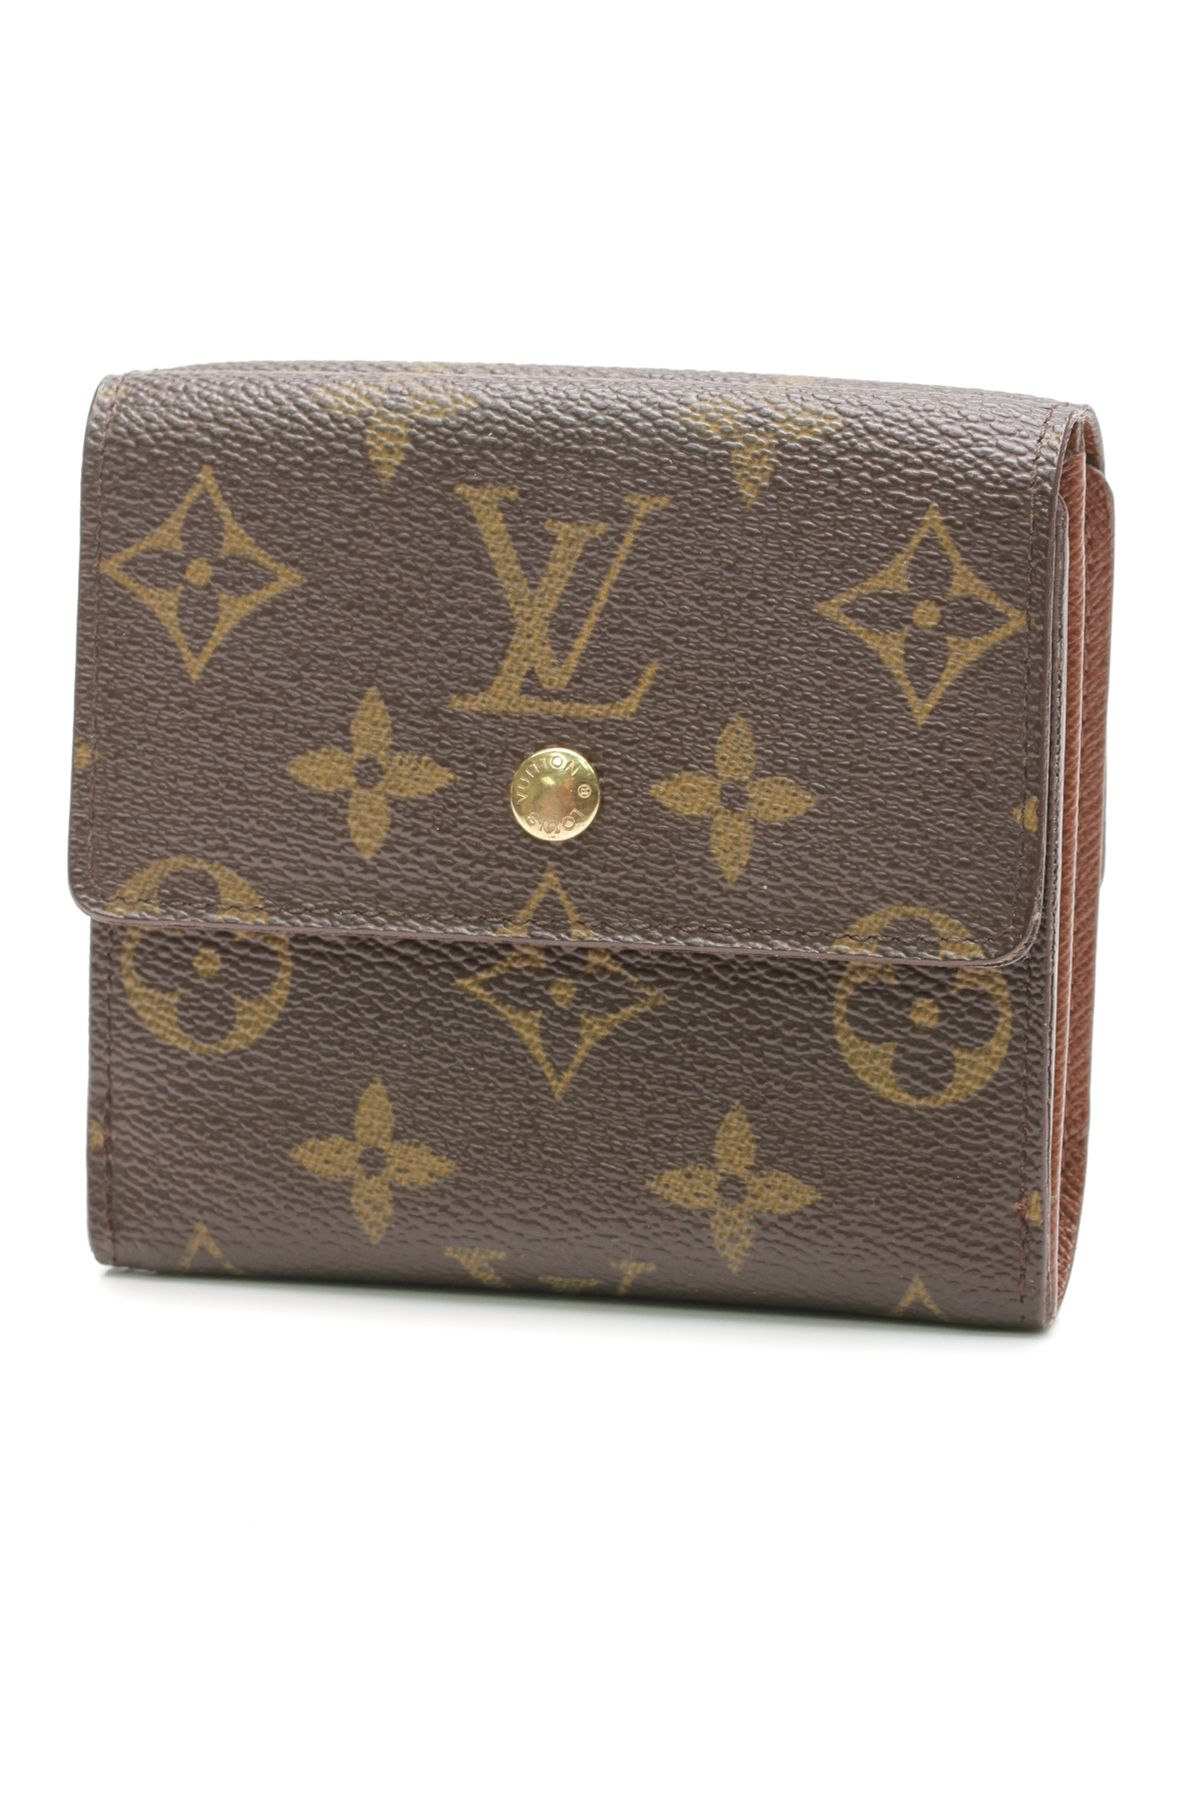 Louis Vuitton Monogram Canvas Elise Wallet  de0d8ecbf3c3c